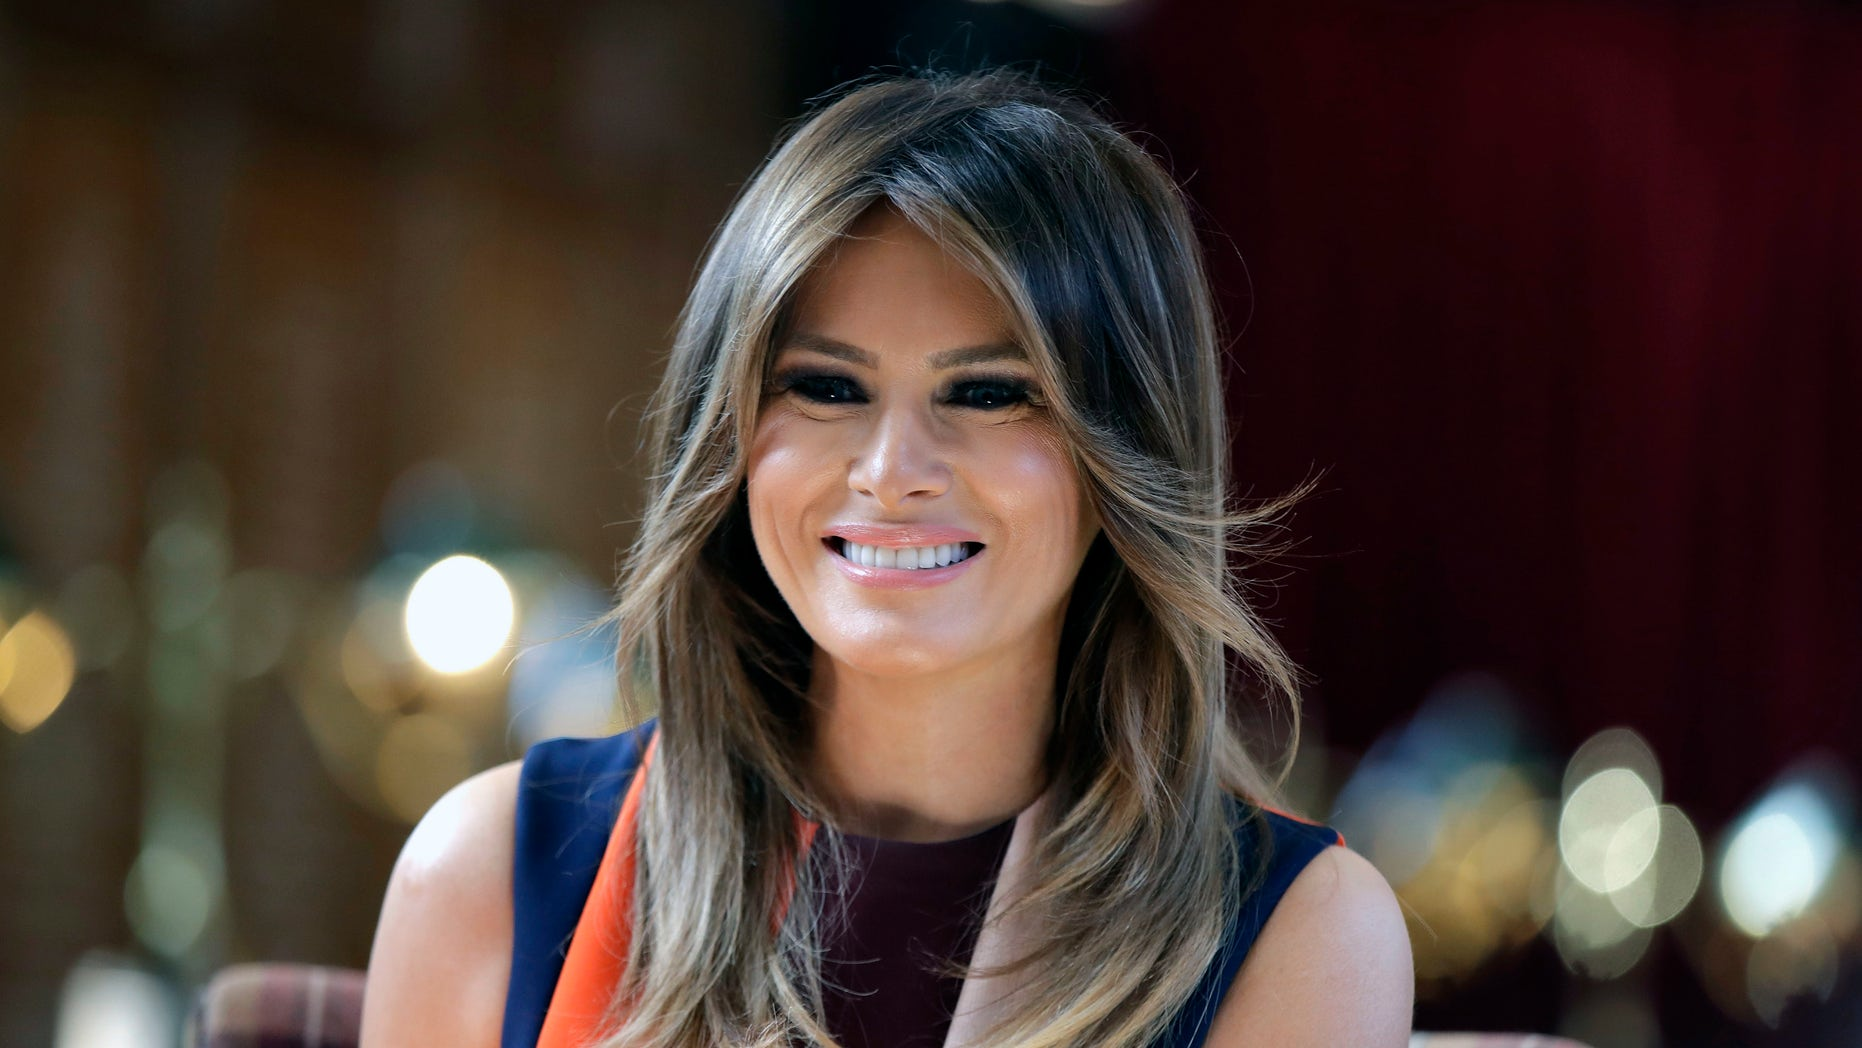 Melania Trump's plane makes unplanned landing after cabin fills with smoke